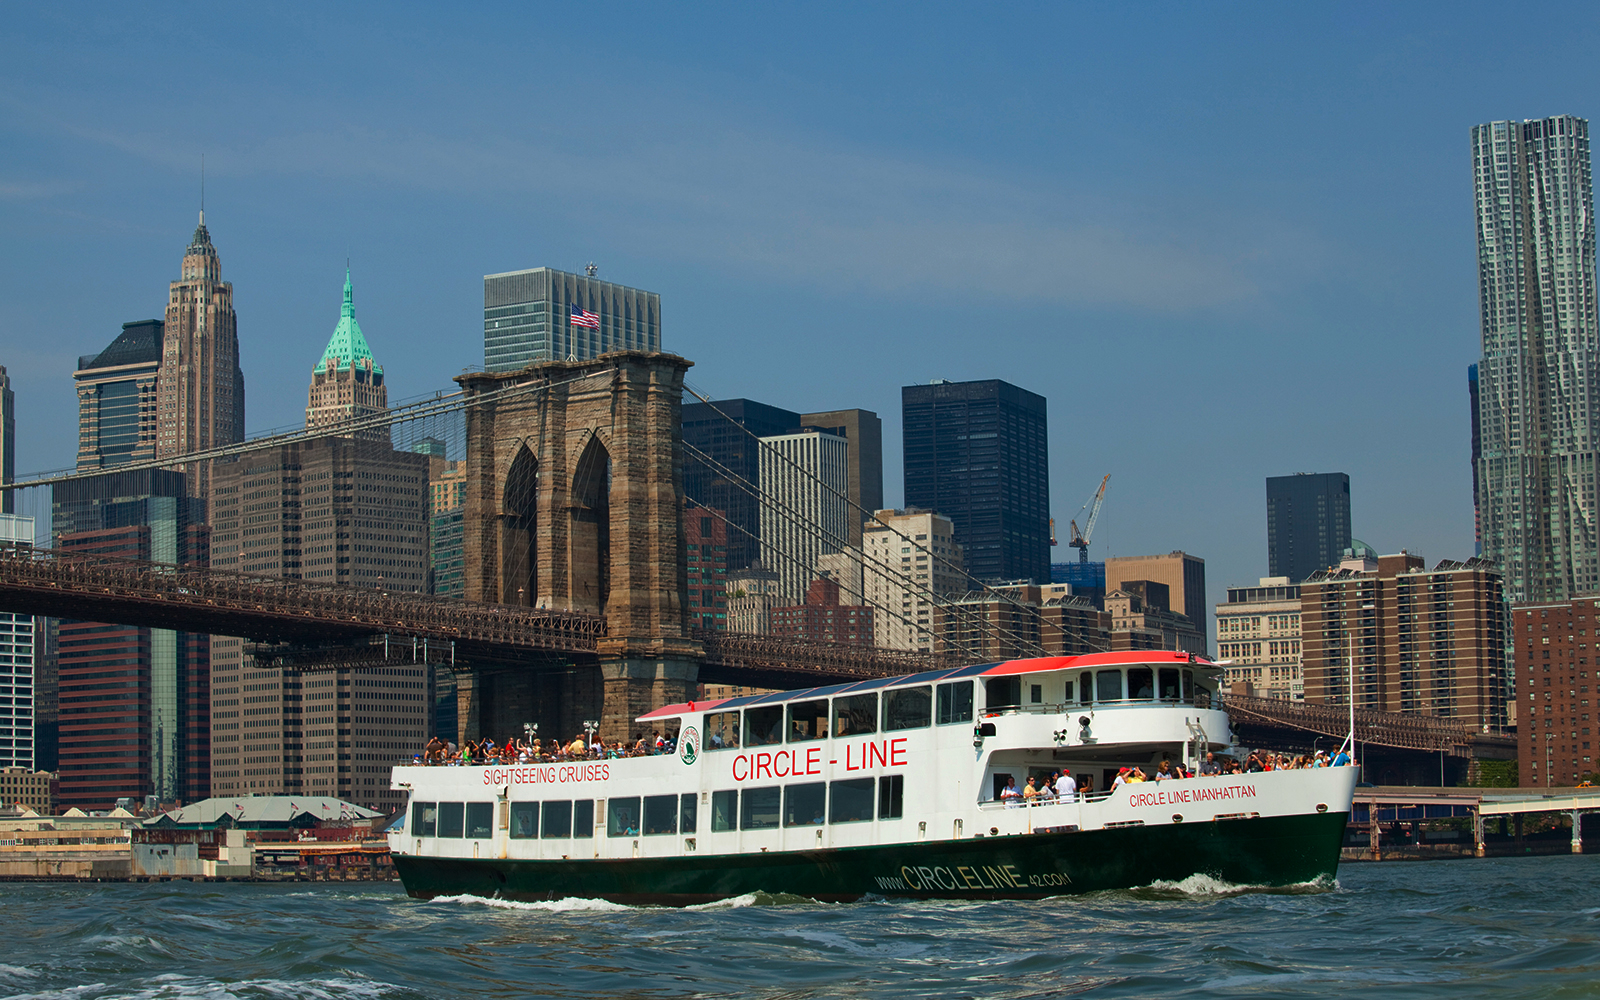 Bd74d455 633d 44b0 99fa 3e7be2716873 9010 new york best of nyc cruise with intrepid museum skip the line tickets 02